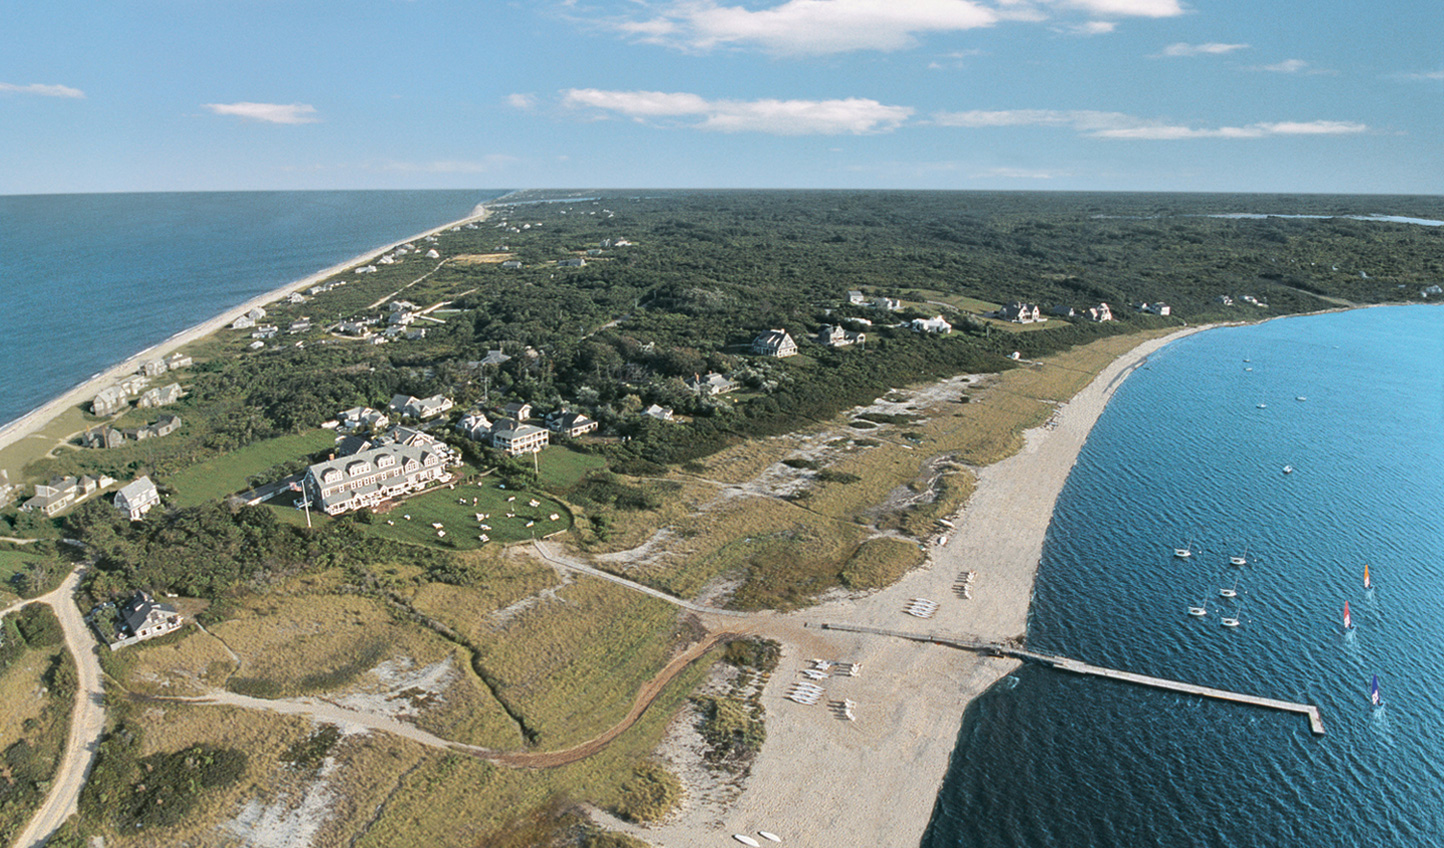 The Wauwinet is tucked away on Nantucket Island